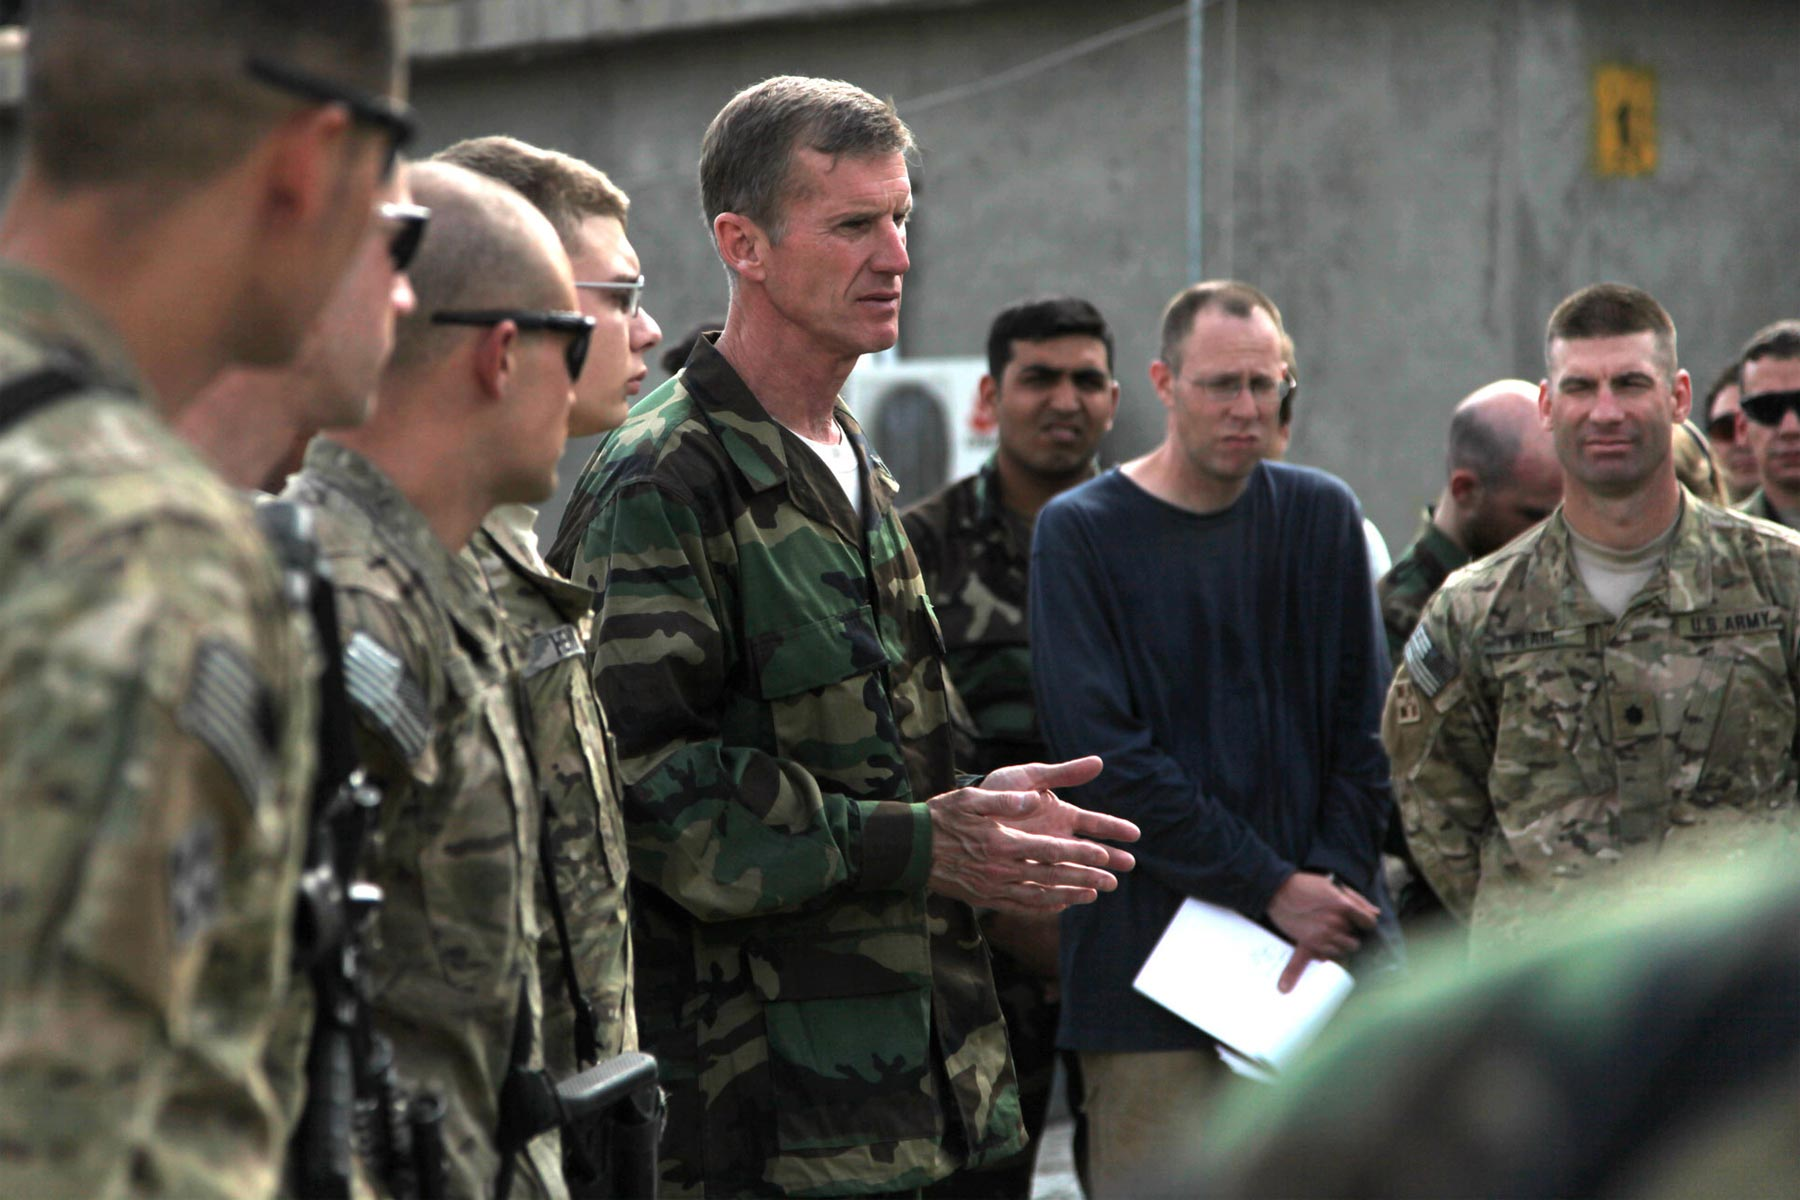 Stanley McChrystal: Stop Fixating on Politicians, Focus on Nation's Problems